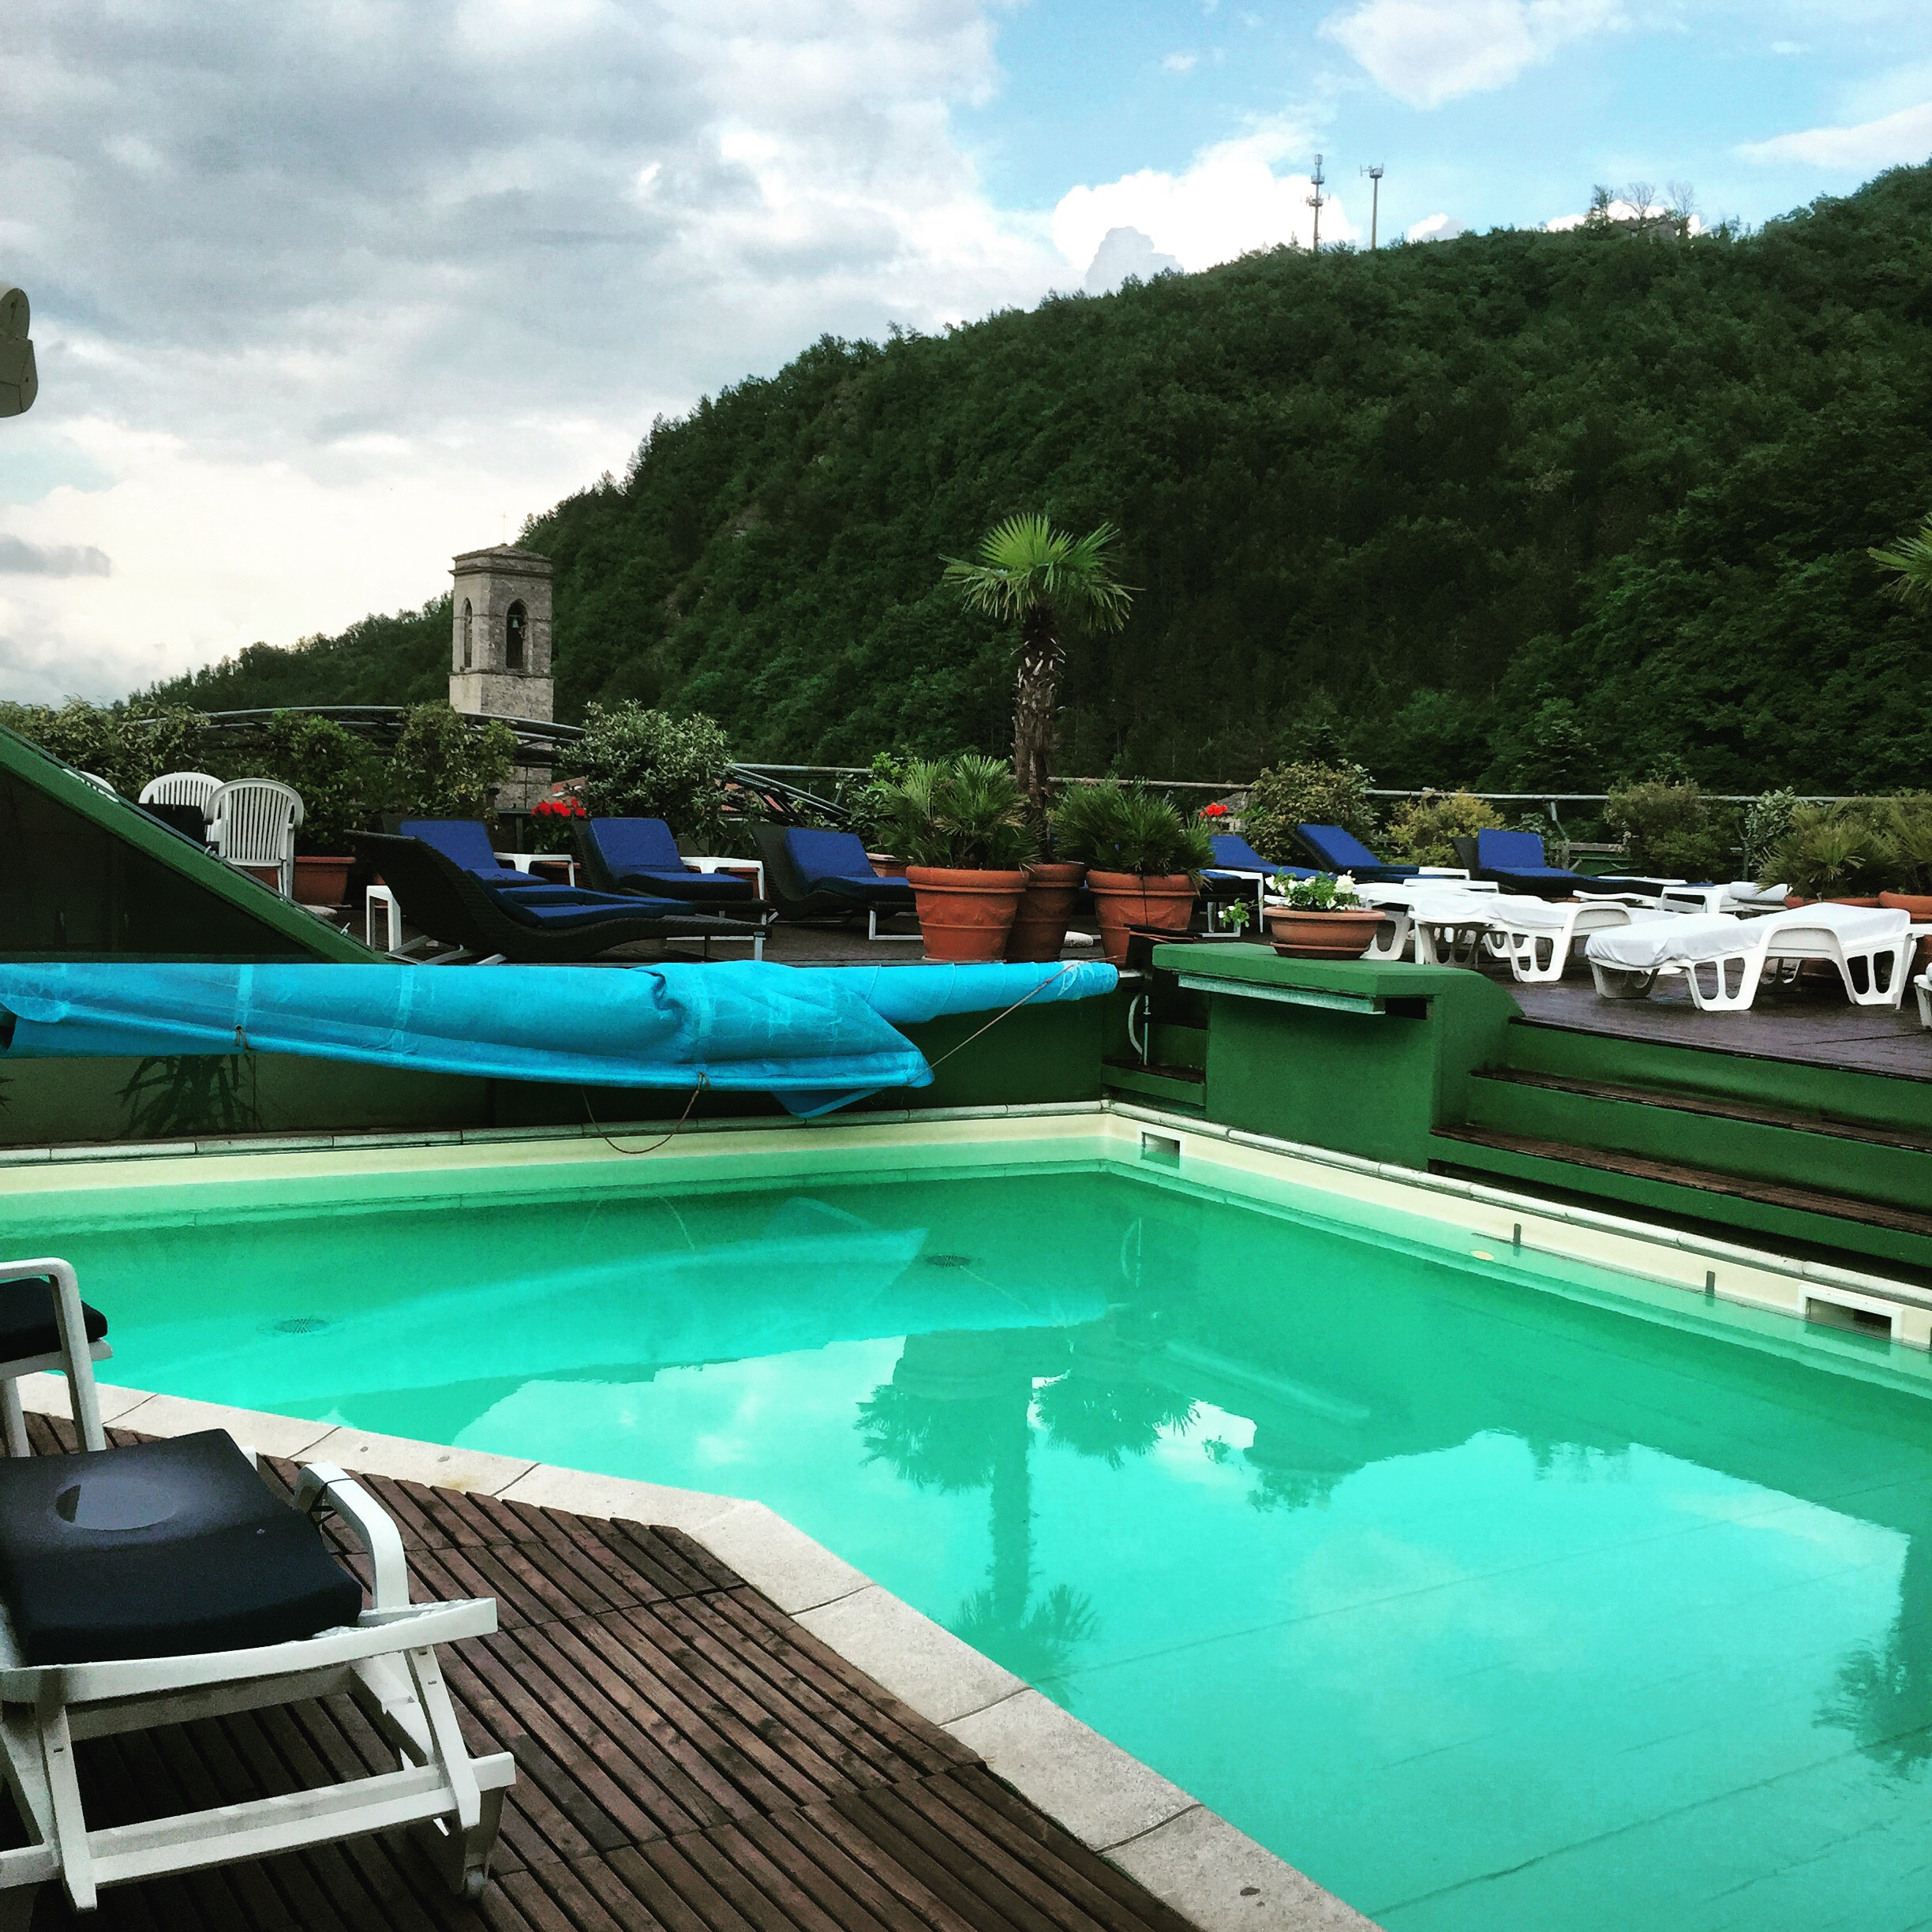 Hotel Tosco Romagnolo A Bagno Di Romagna Cycling Tour Emilia Romagna Fabulous Outdoors Blog